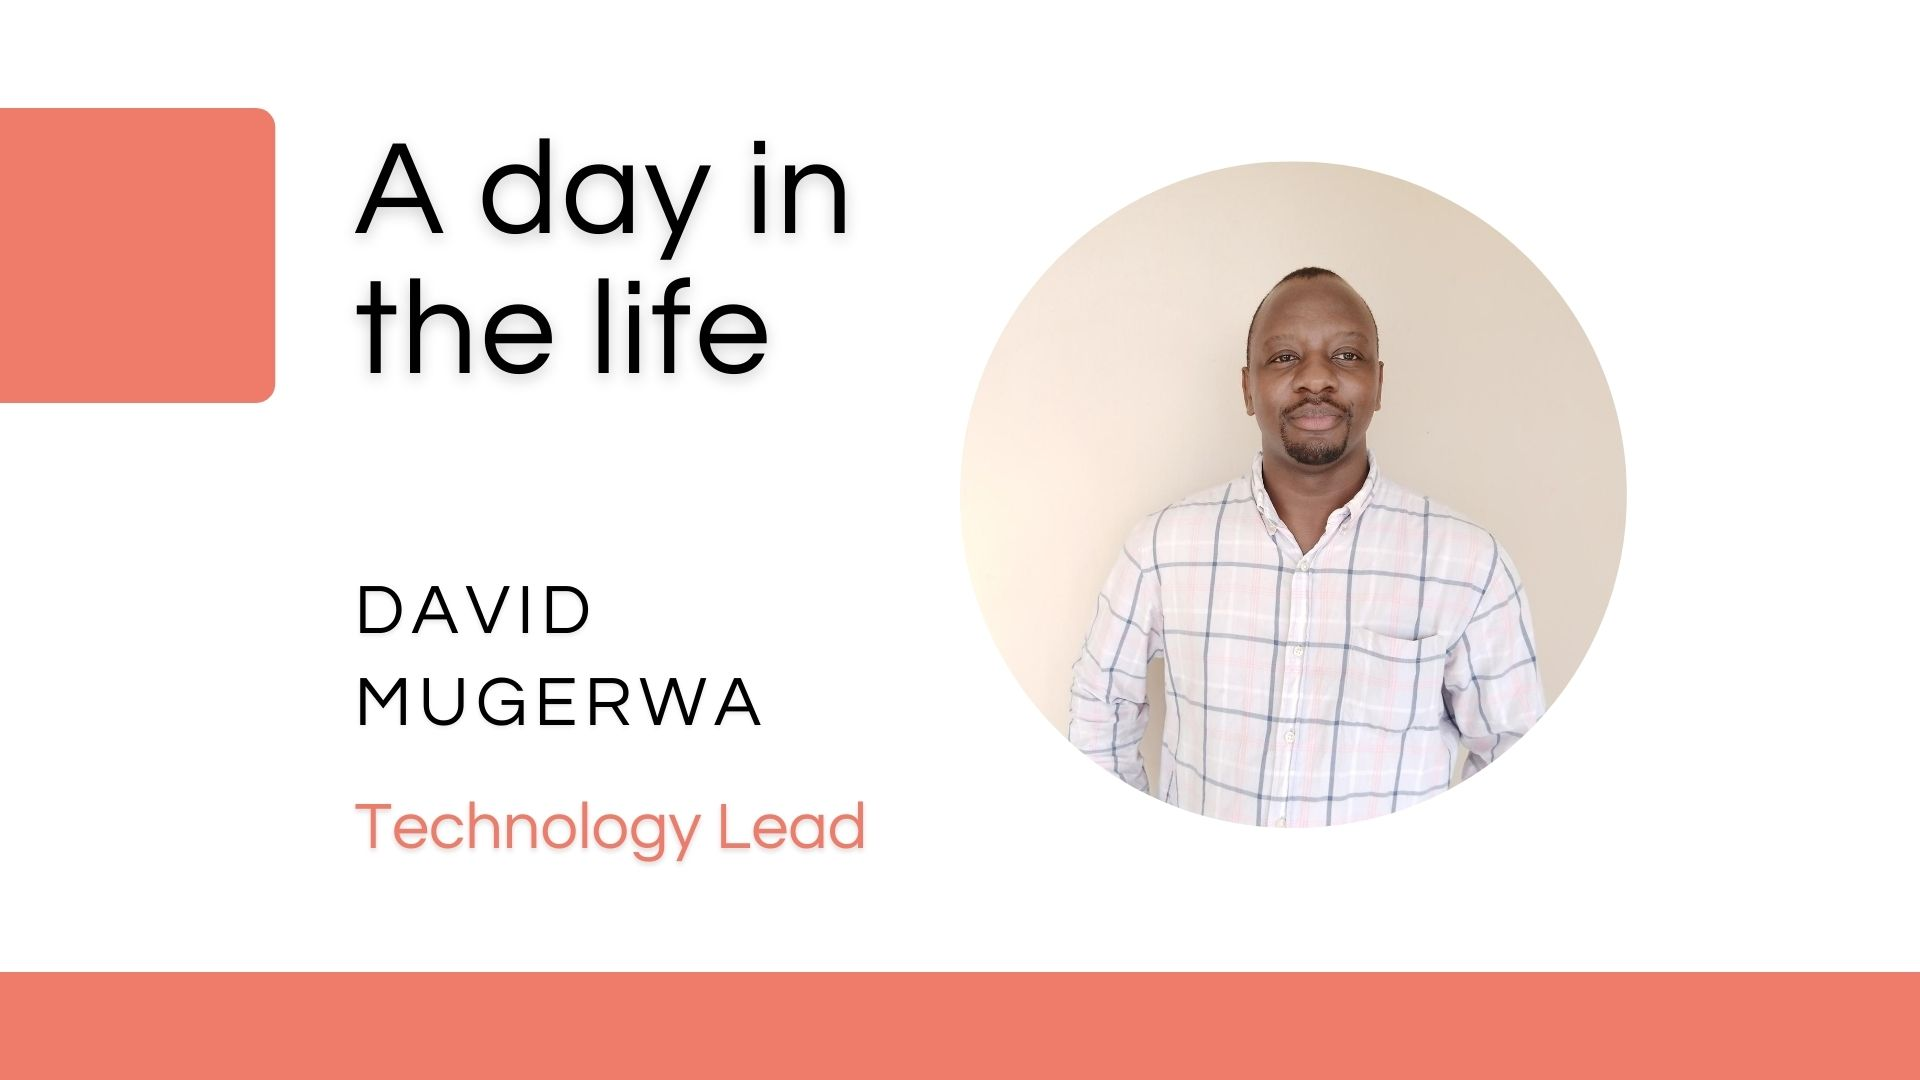 Day in the life Interview: David Mugerwa